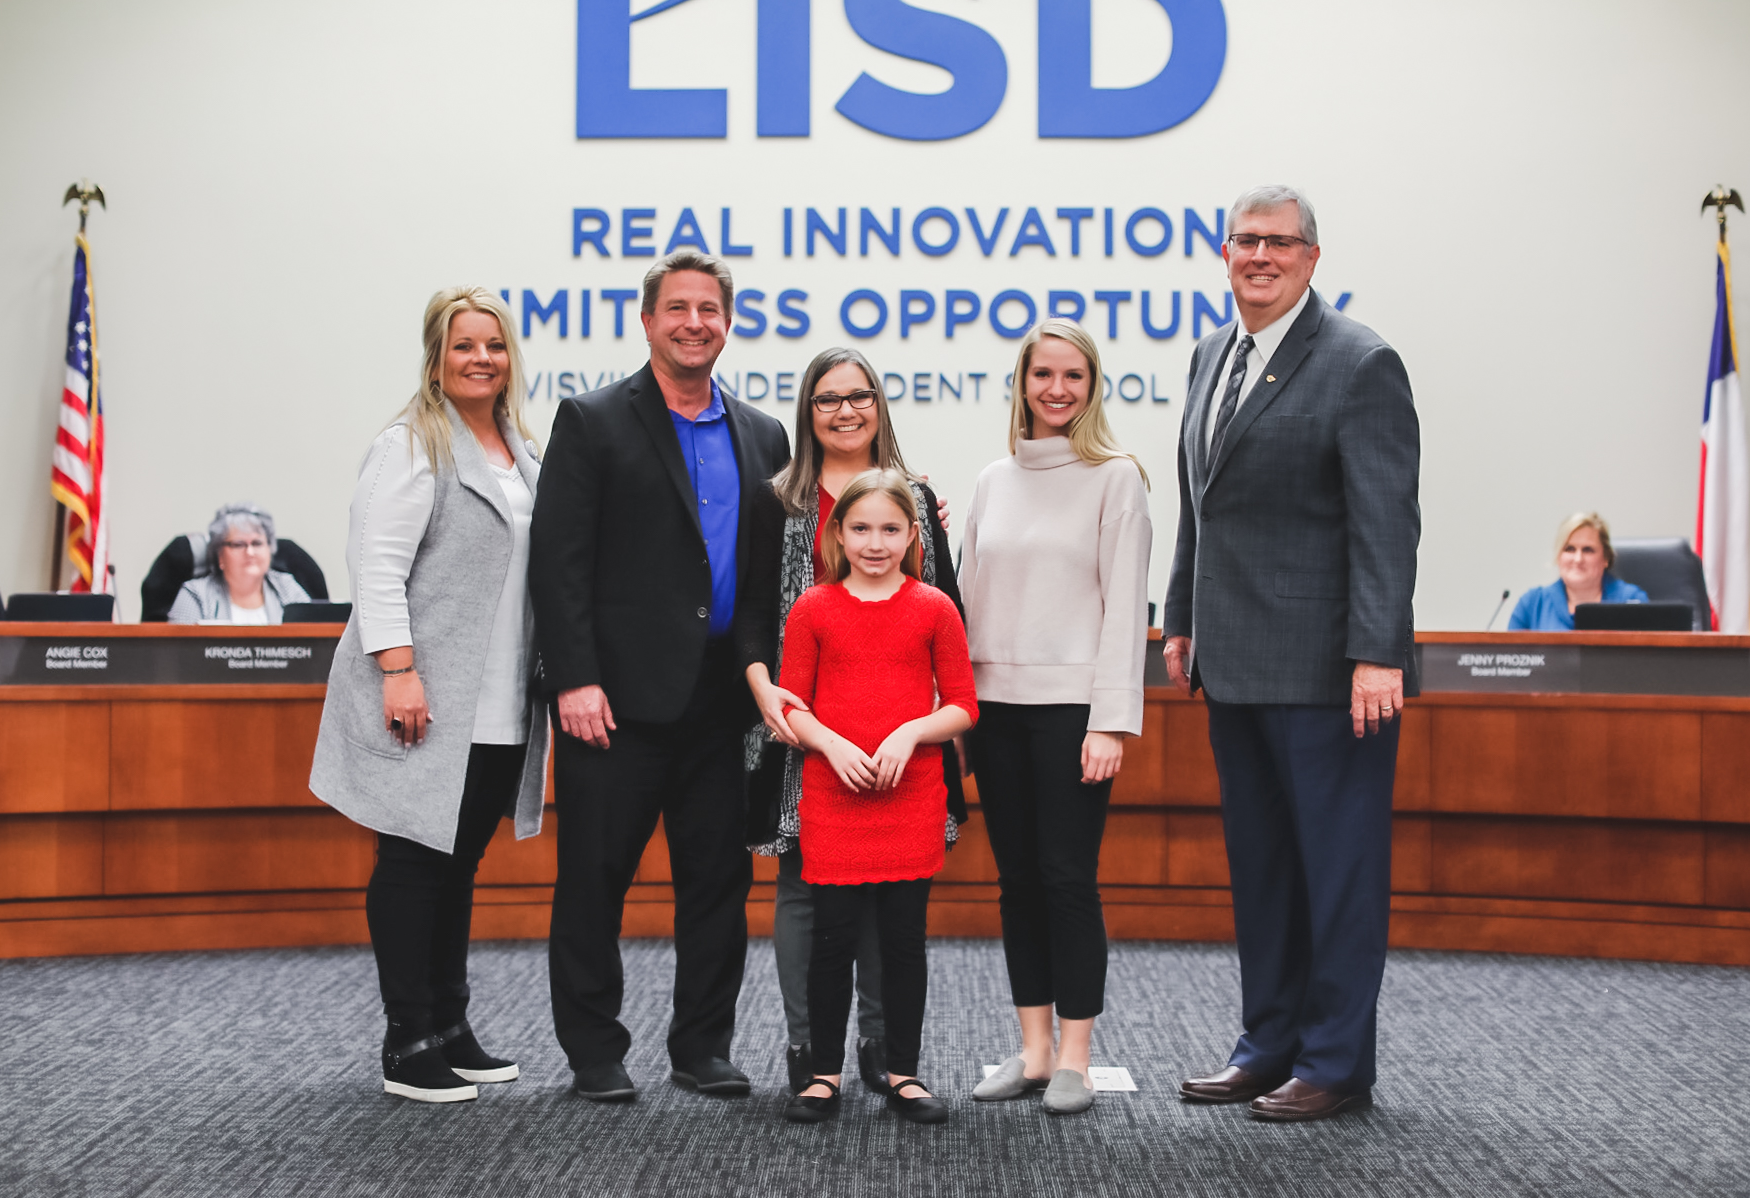 LISD's Director of Virtual Learning Dr. Chris Bigenho poses with family and LISD administration. Feb. 2020